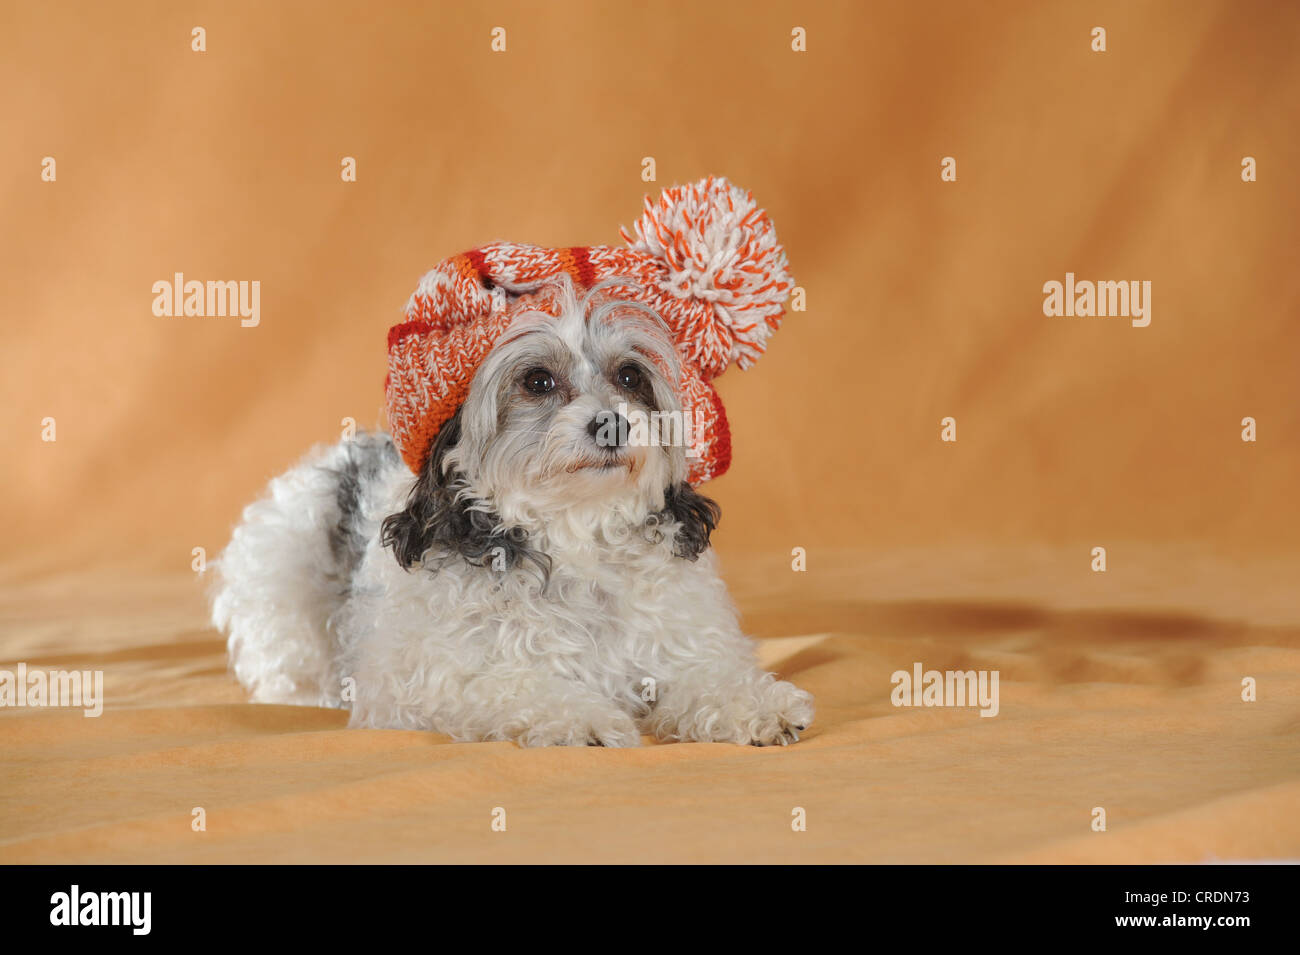 Chinese Crested Hairless Dog, Powderpuff, lying, wearing a red and white cap - Stock Image